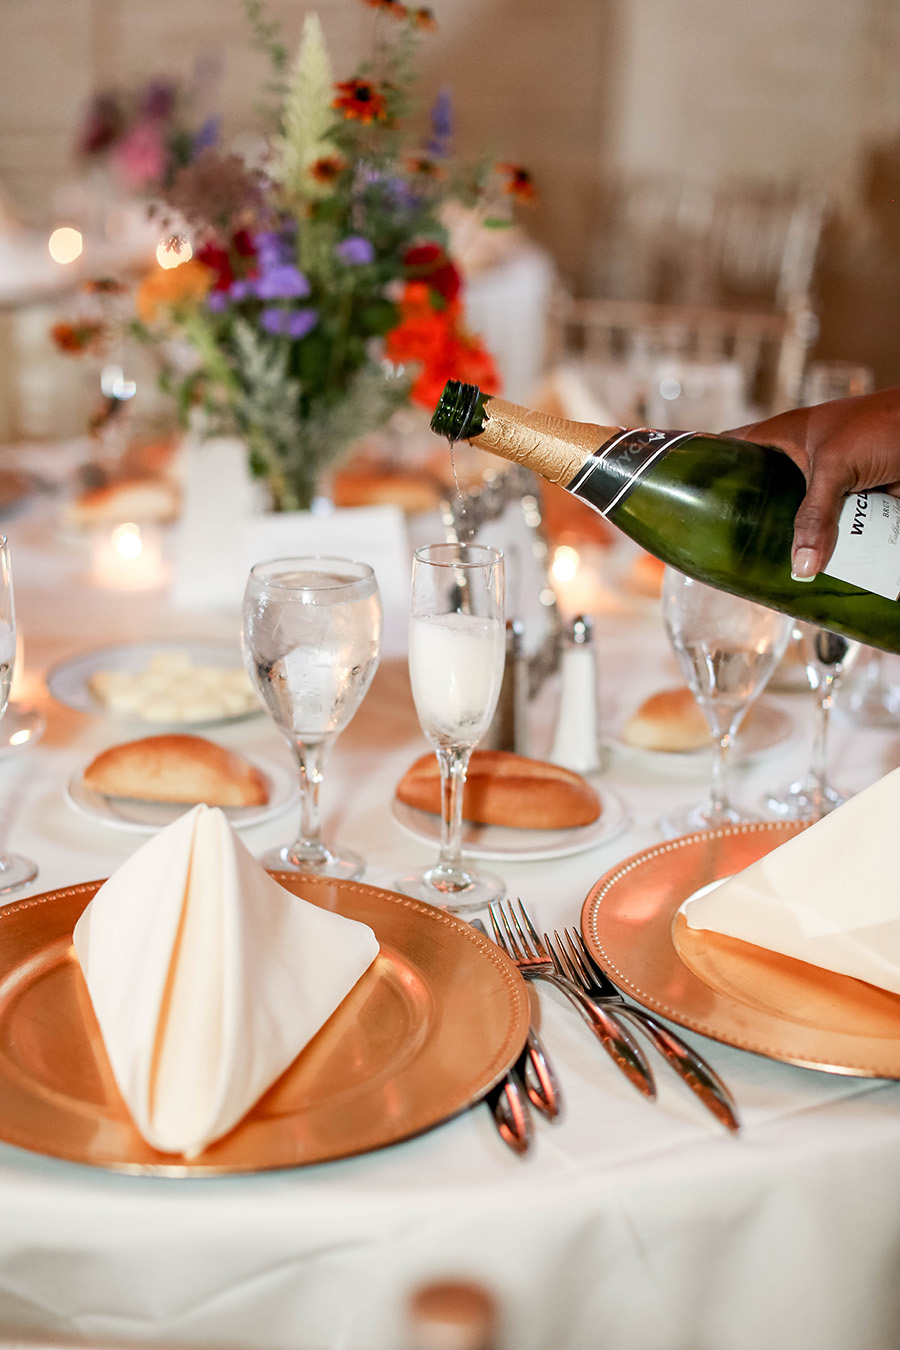 champagne being poured into flutes at union trust wedding